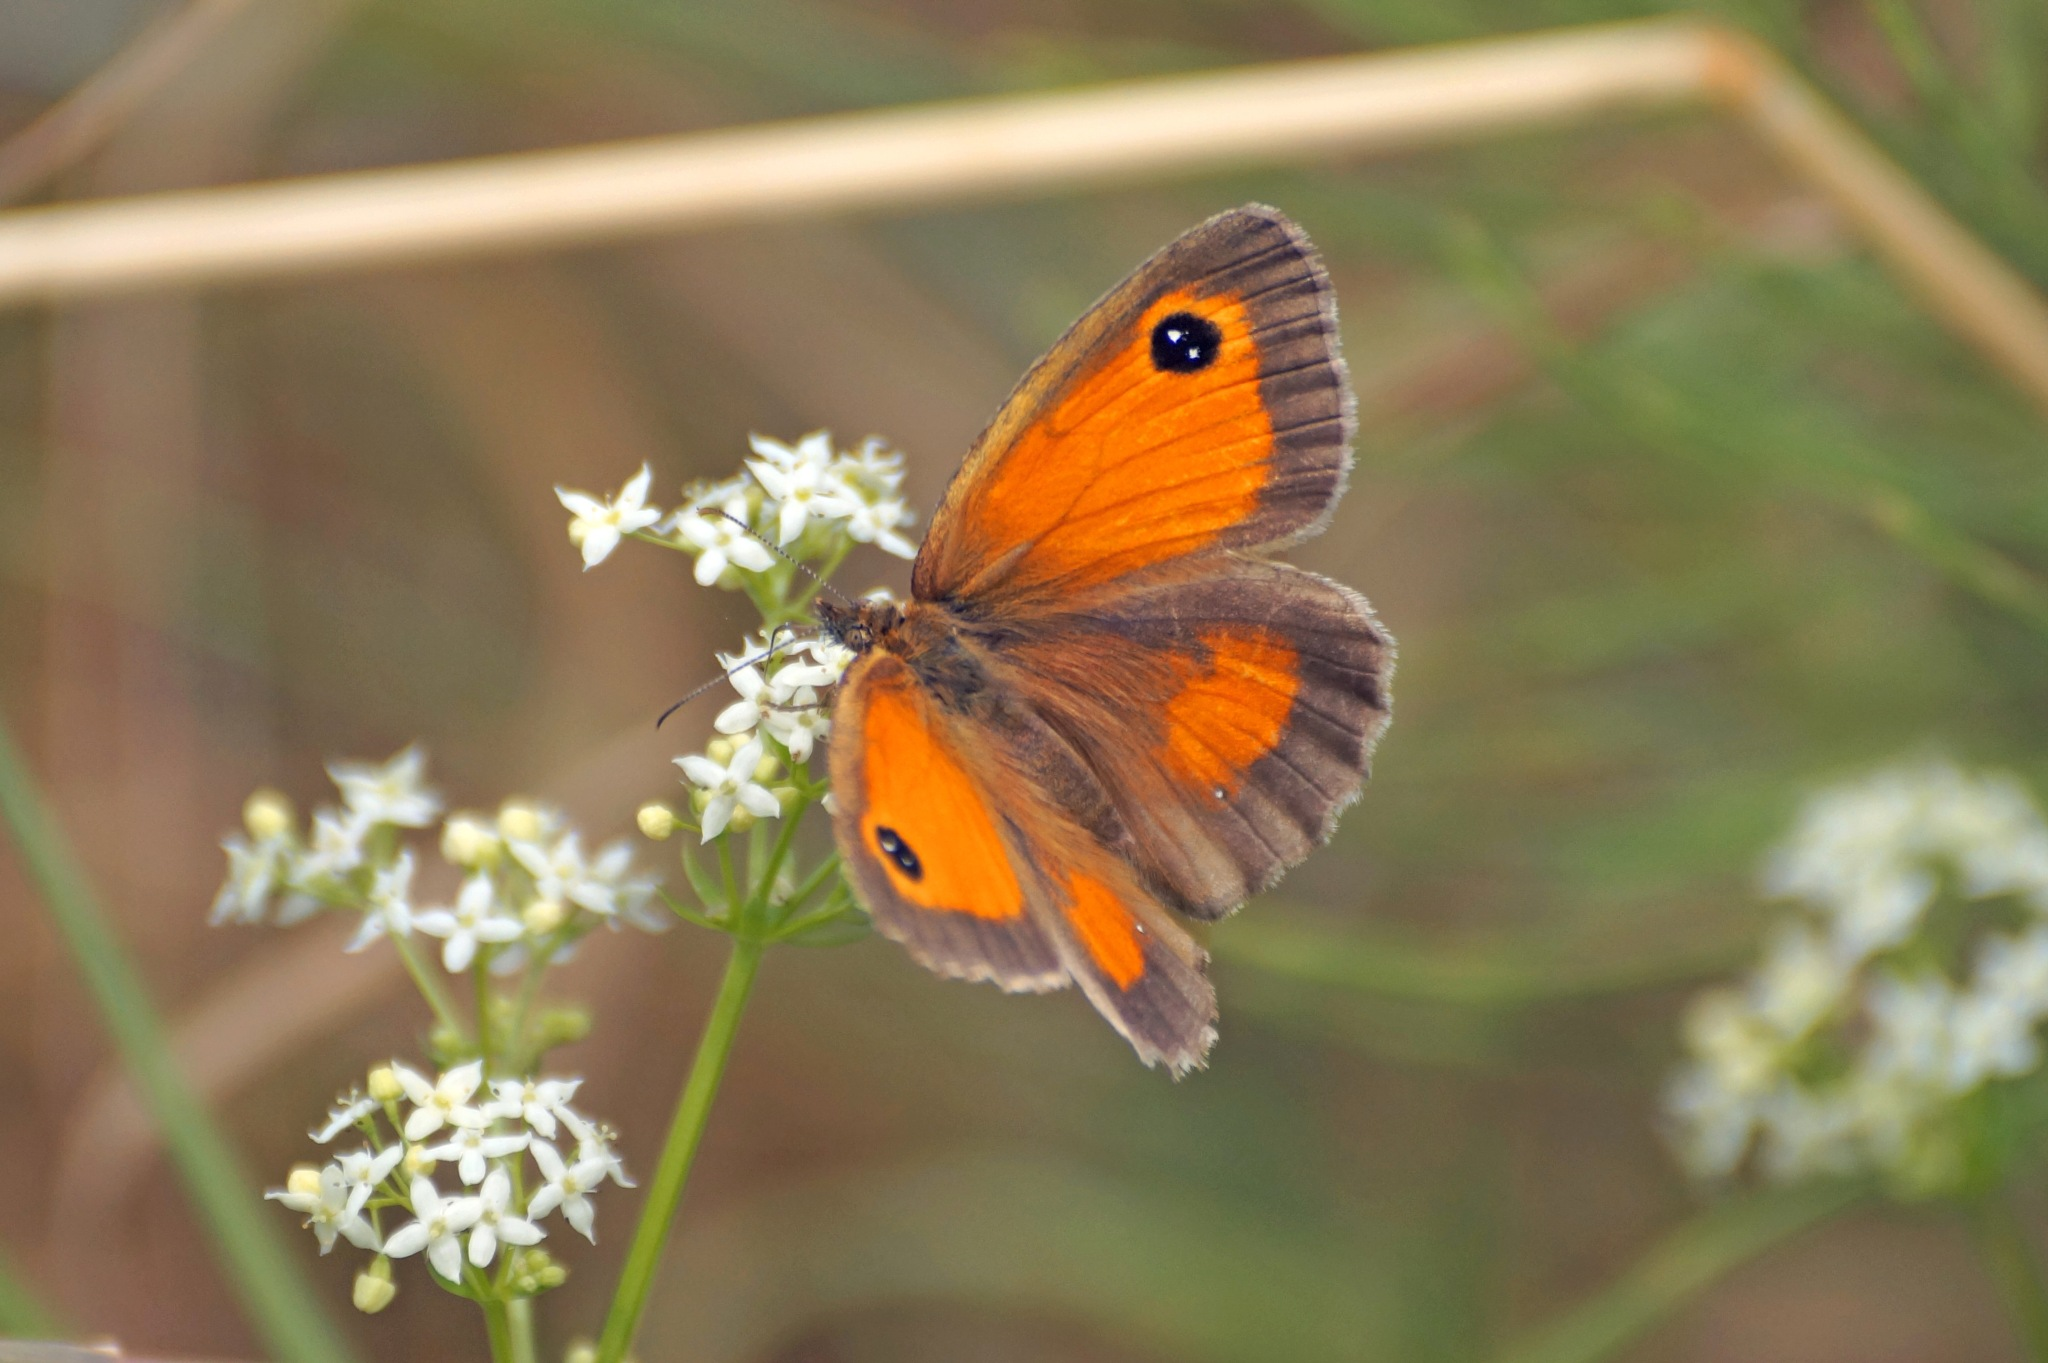 Butterfly by Marian Baay